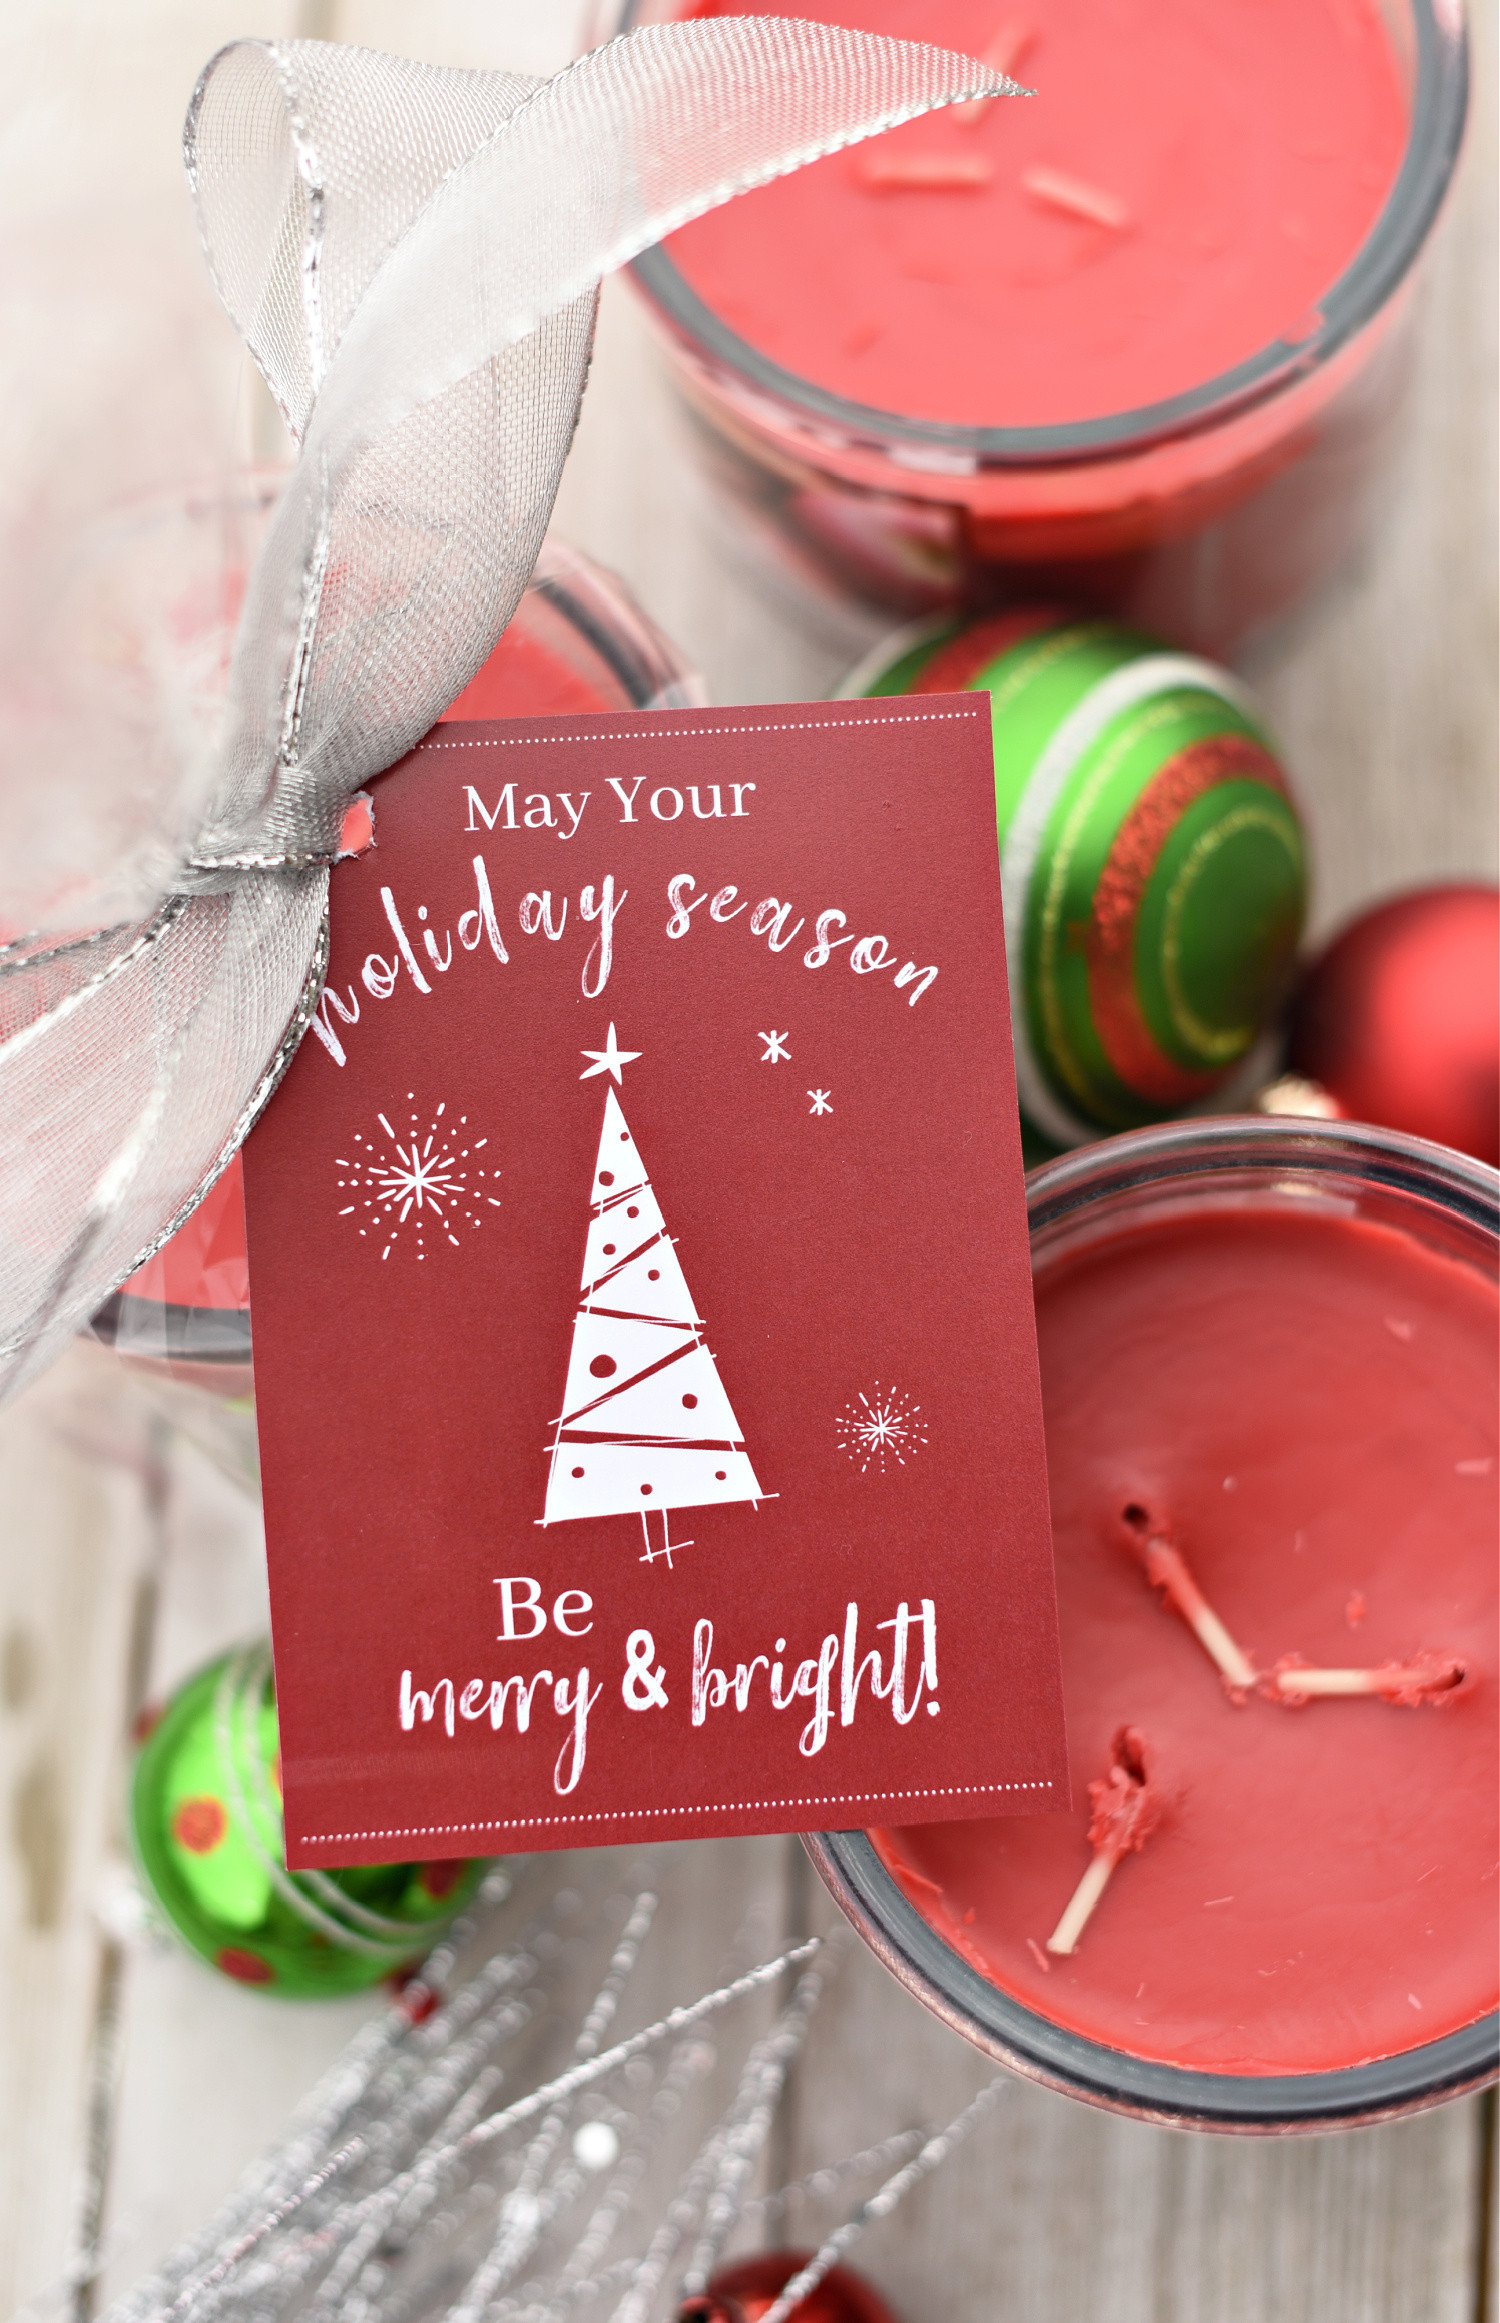 Merry & Bright Neighbor Gift Idea: Add this tag to a candle and you're all set!